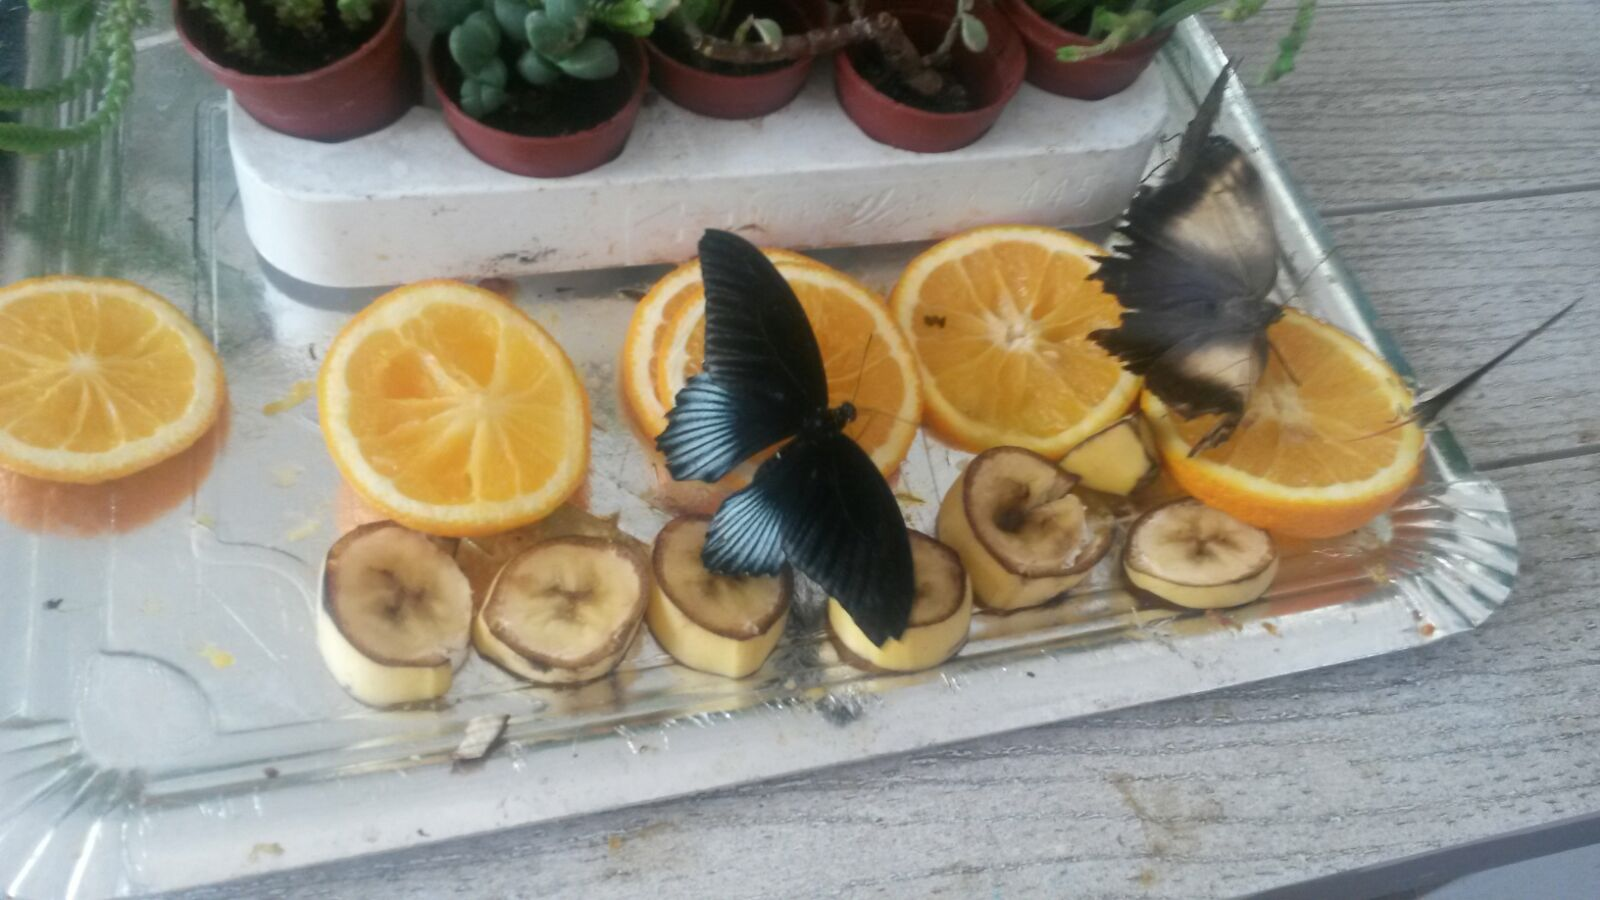 Z camp, day 4 - full-day excursion, butterflies eat fruit